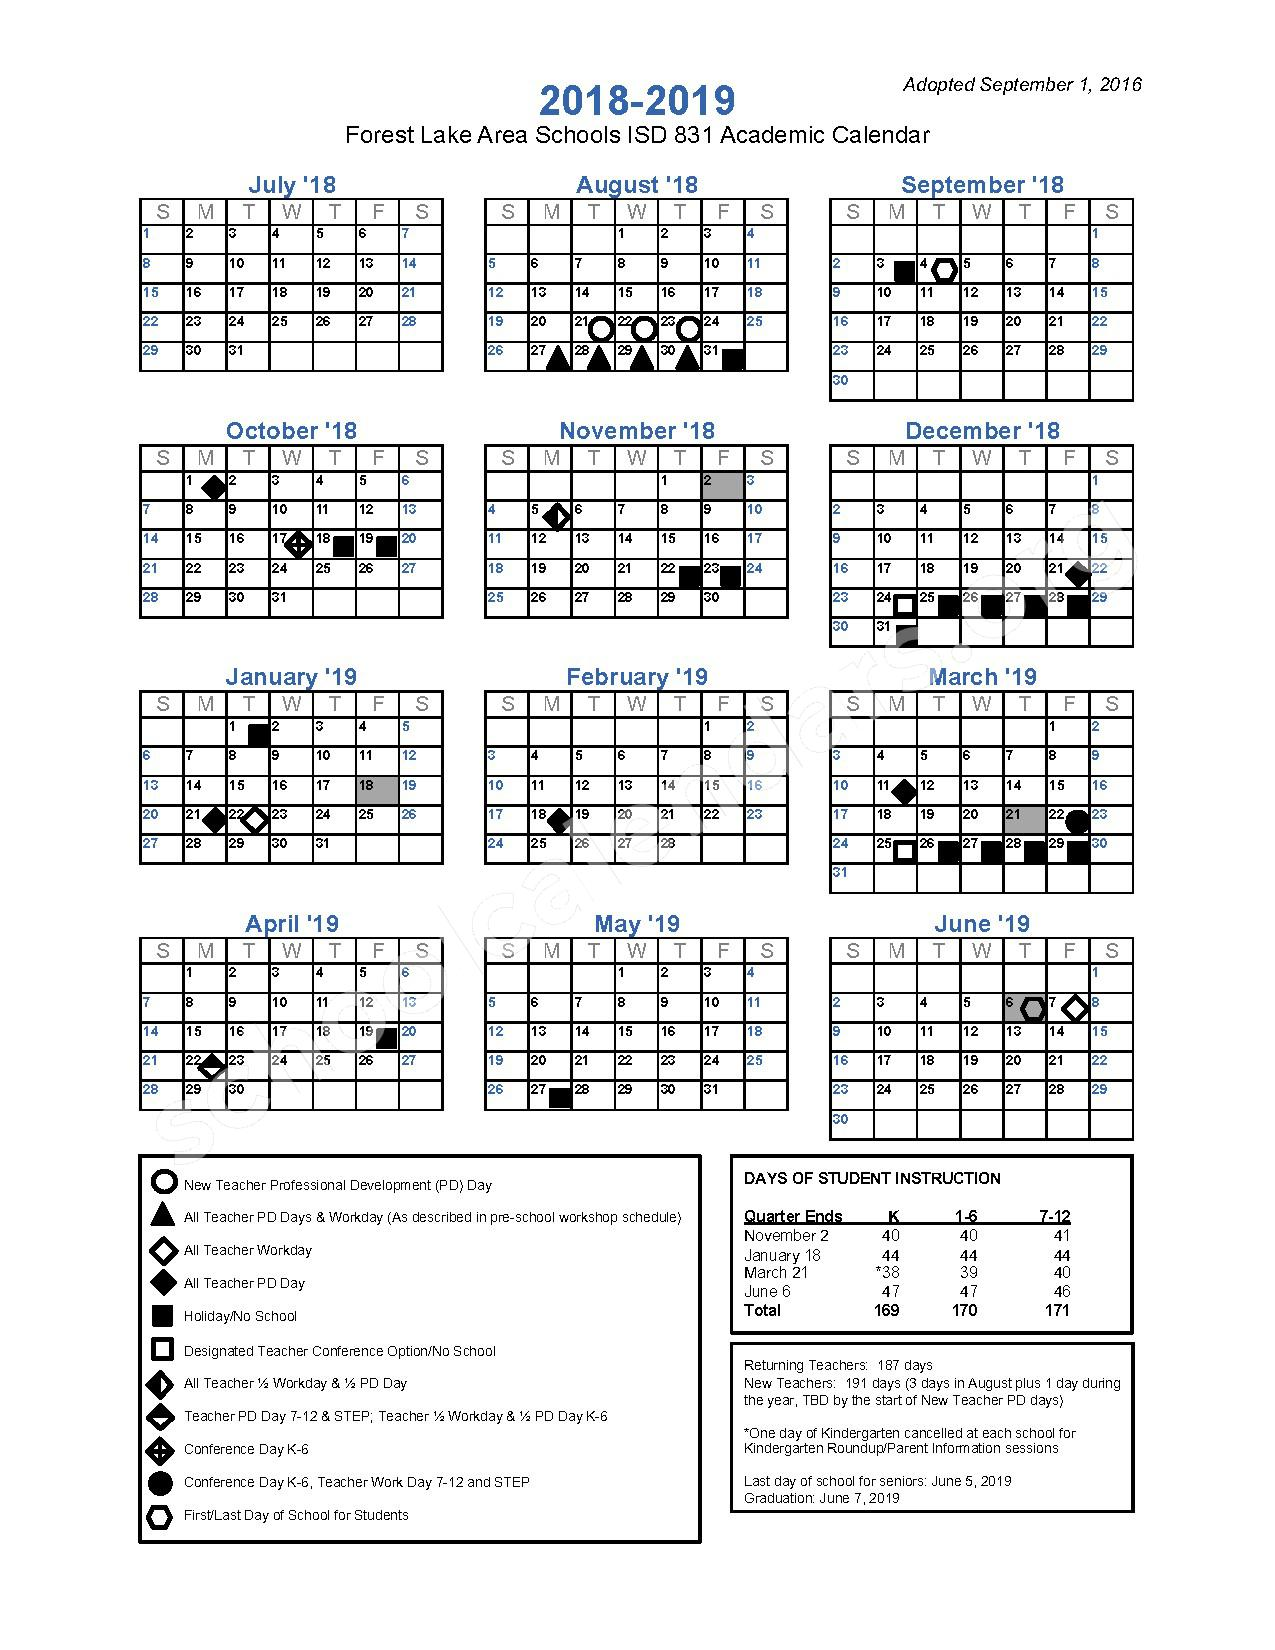 2018 - 2019 District Calendar – Forest Lake Area Schools – page 1